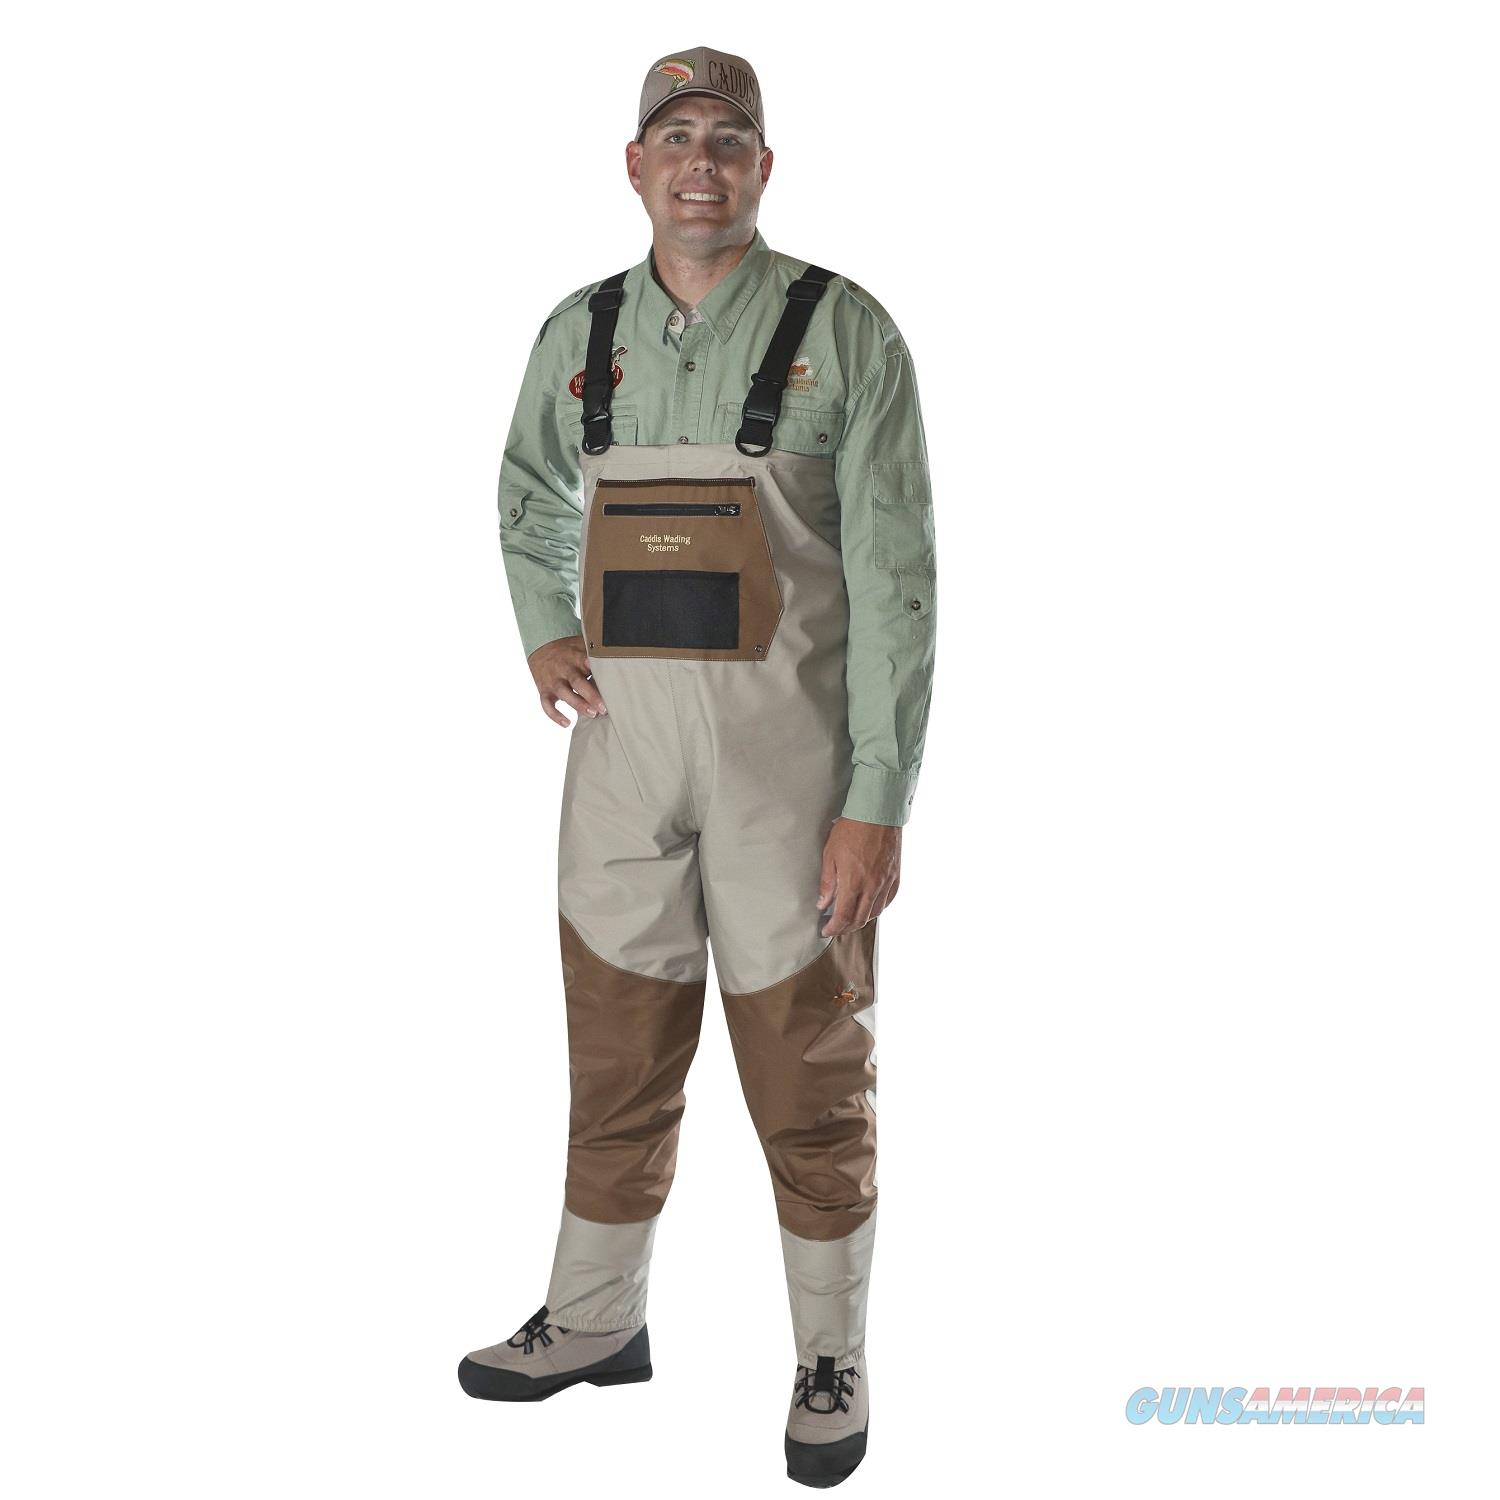 Caddis Men's Deluxe Breathable Stockingfoot Waders - Xxl CA12901WXXL  Non-Guns > Fishing/Spearfishing